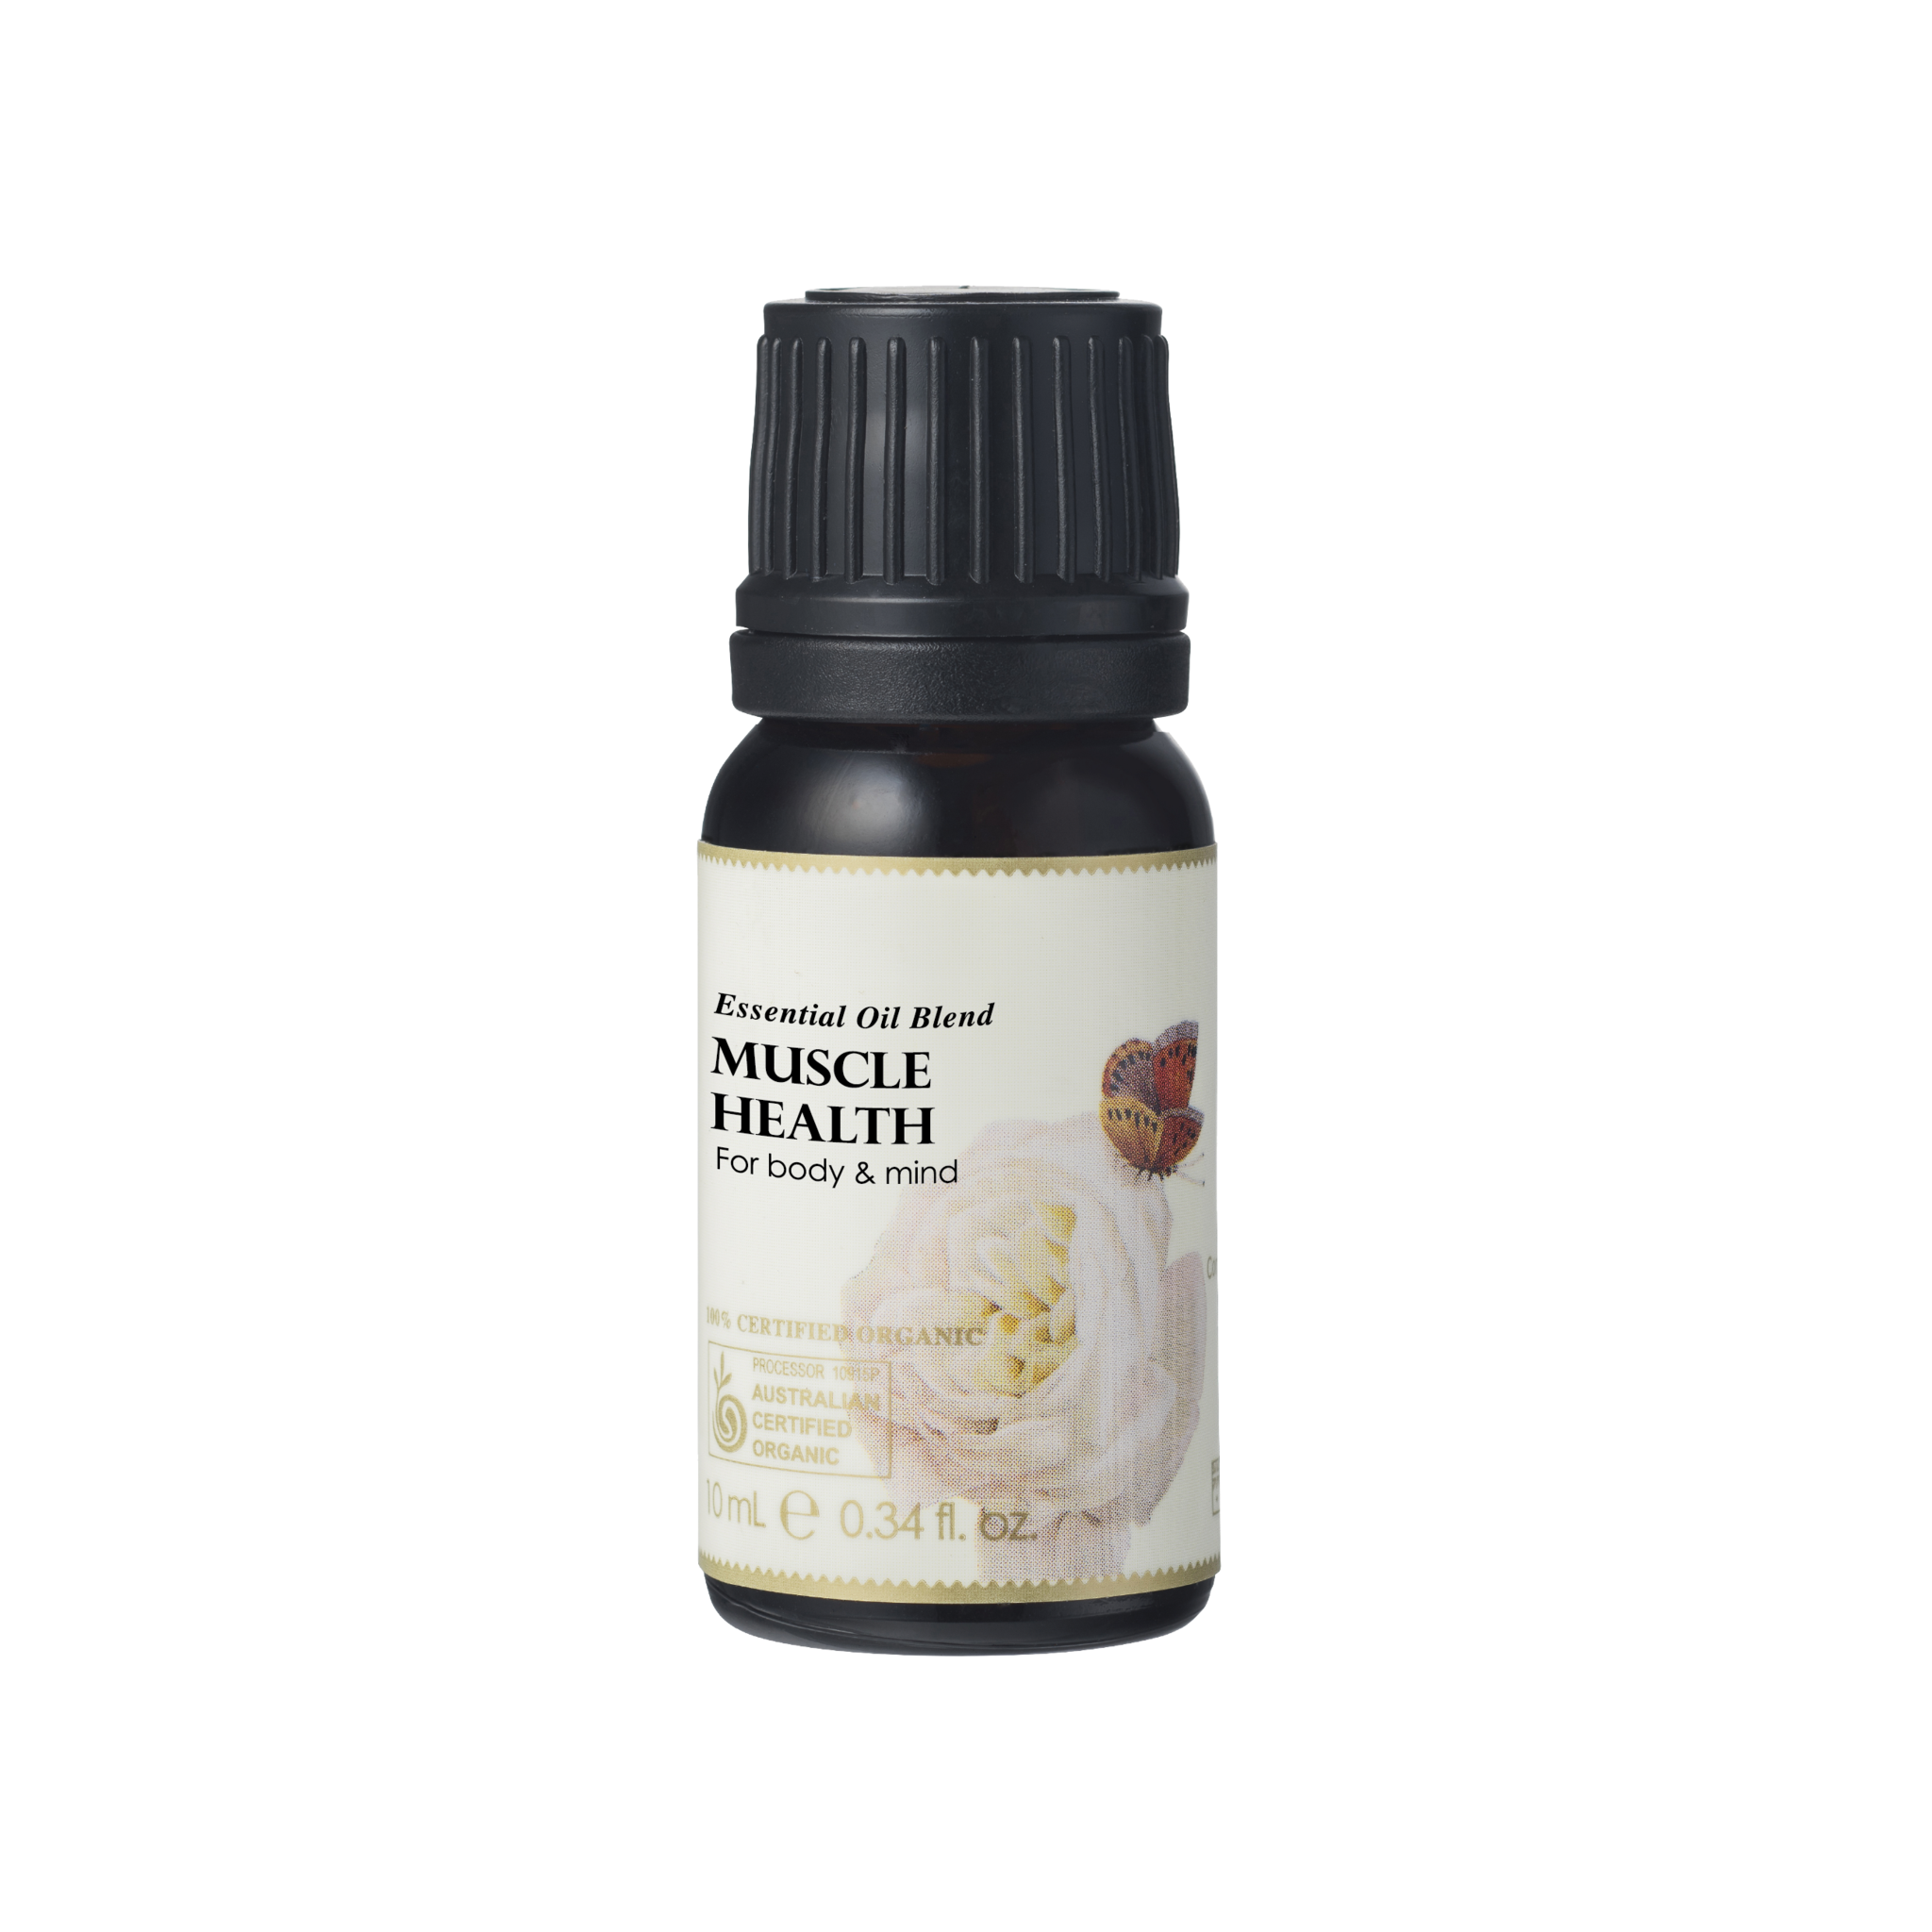 Muscle Health Essential Oil Blend